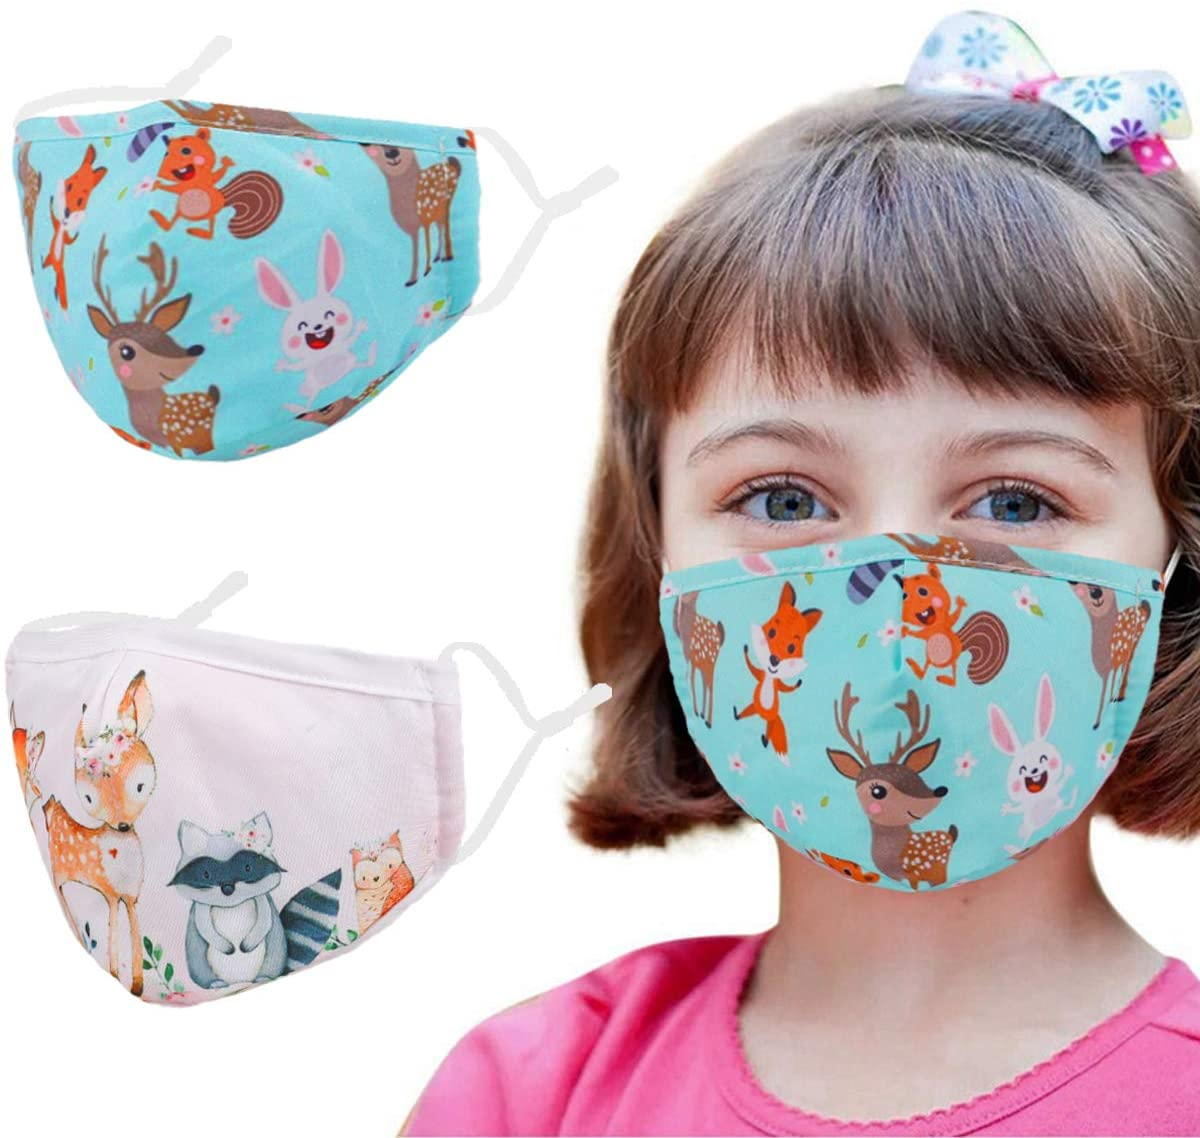 Enjoy Holiday 1981 Kids Cute Face Mask with Adjustable Ear Loops, Washable Reusable Mask for Protection